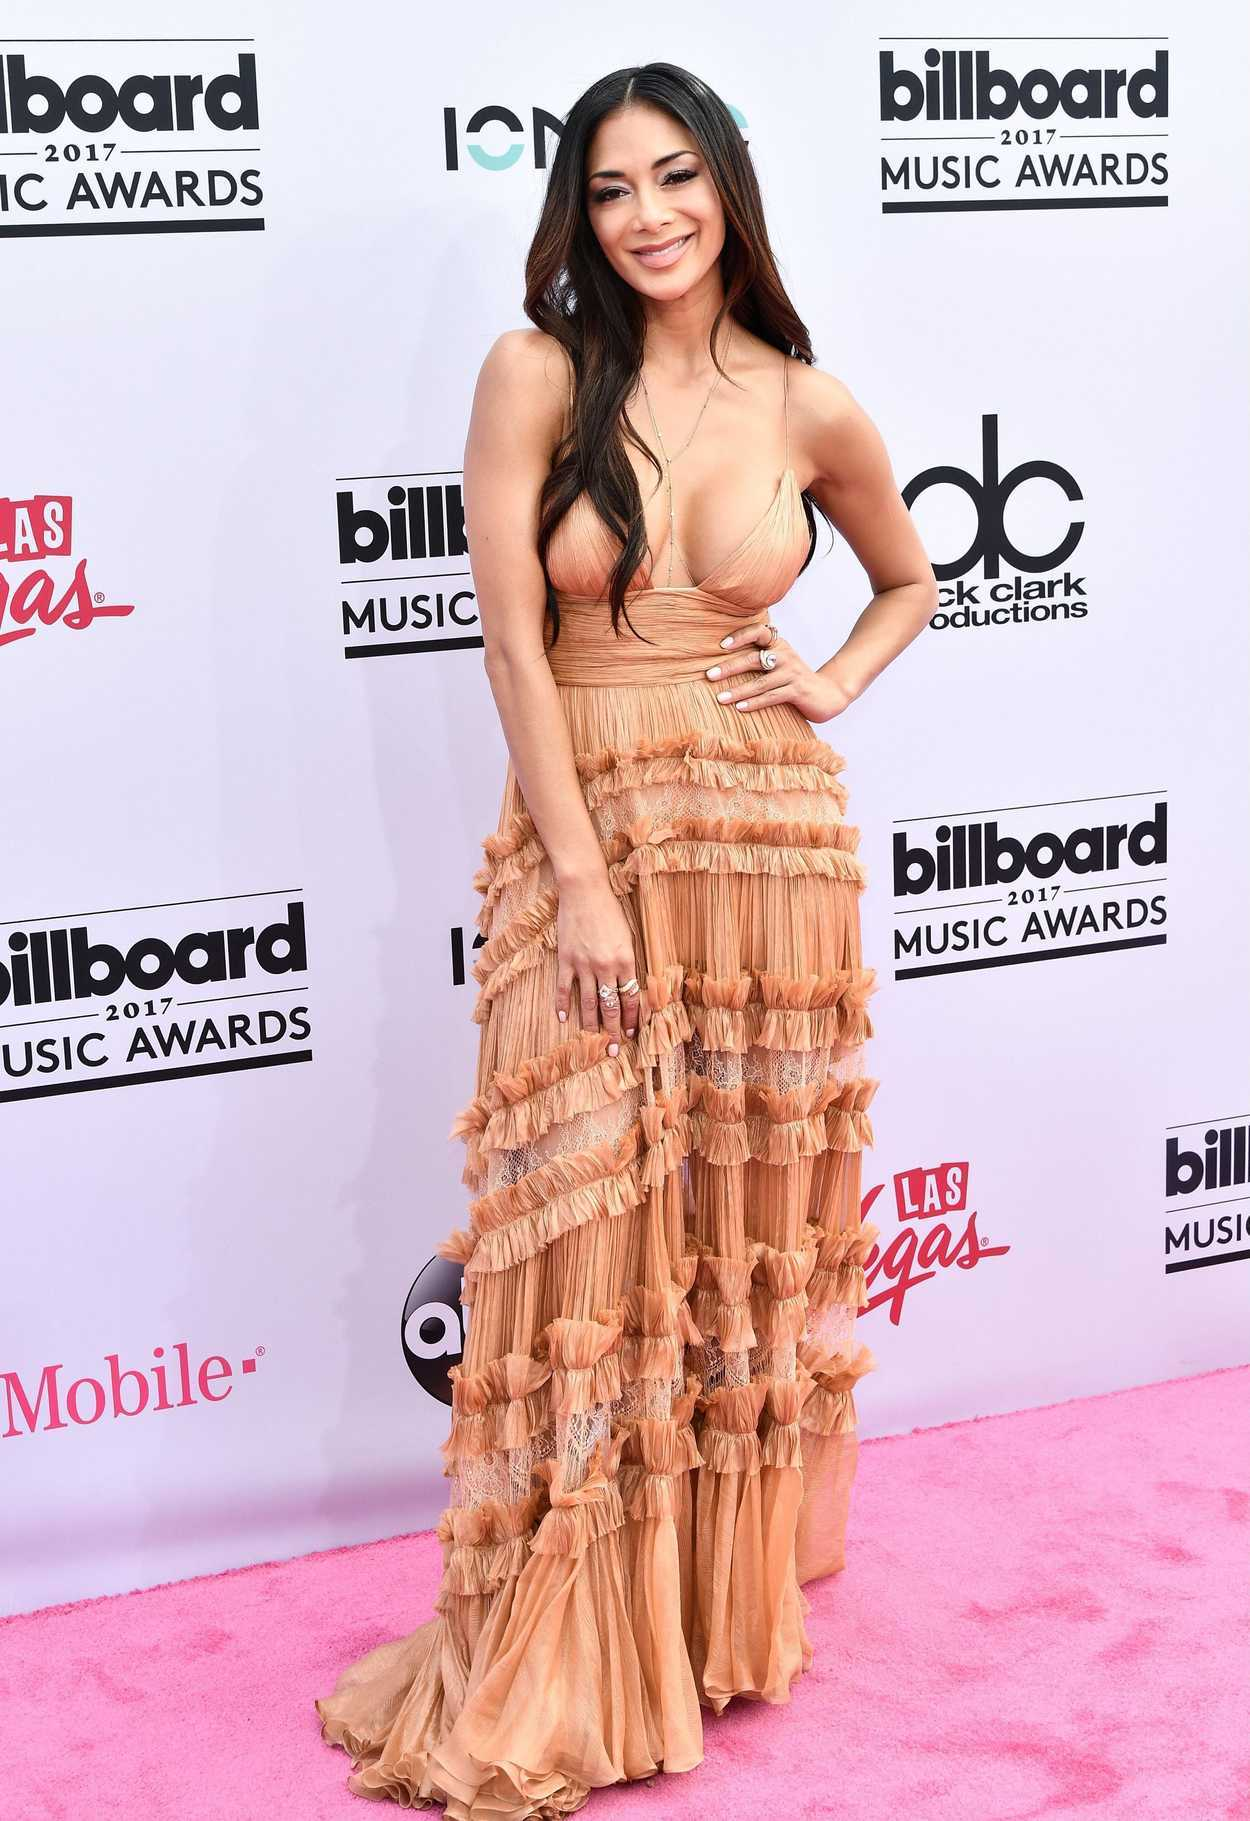 Billboard Music Awards 2016 The Best Hair And Makeup: Nicole Scherzinger At The 2017 Billboard Music Awards In